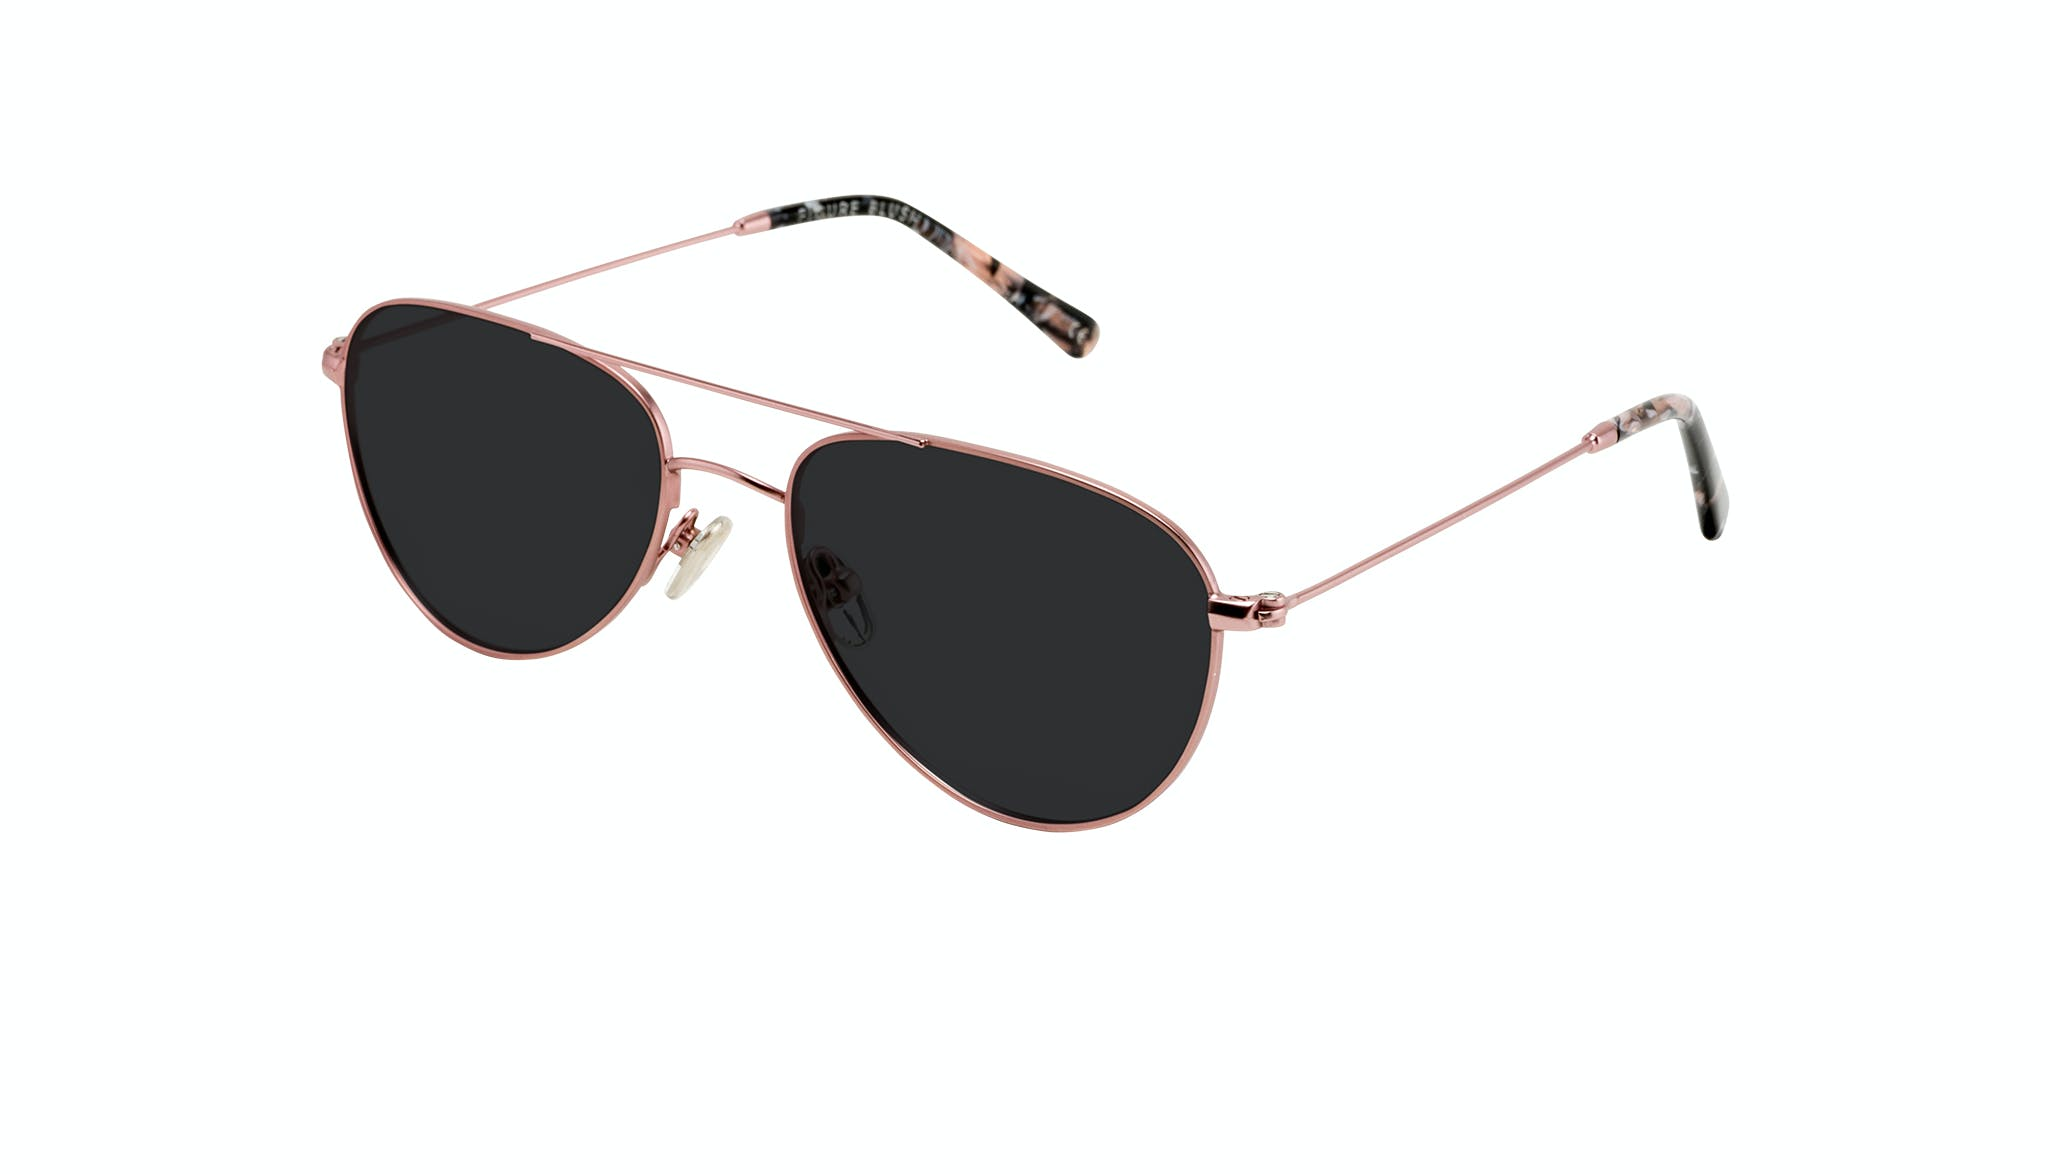 Affordable Fashion Glasses Aviator Sunglasses Women Figure Blush Tilt